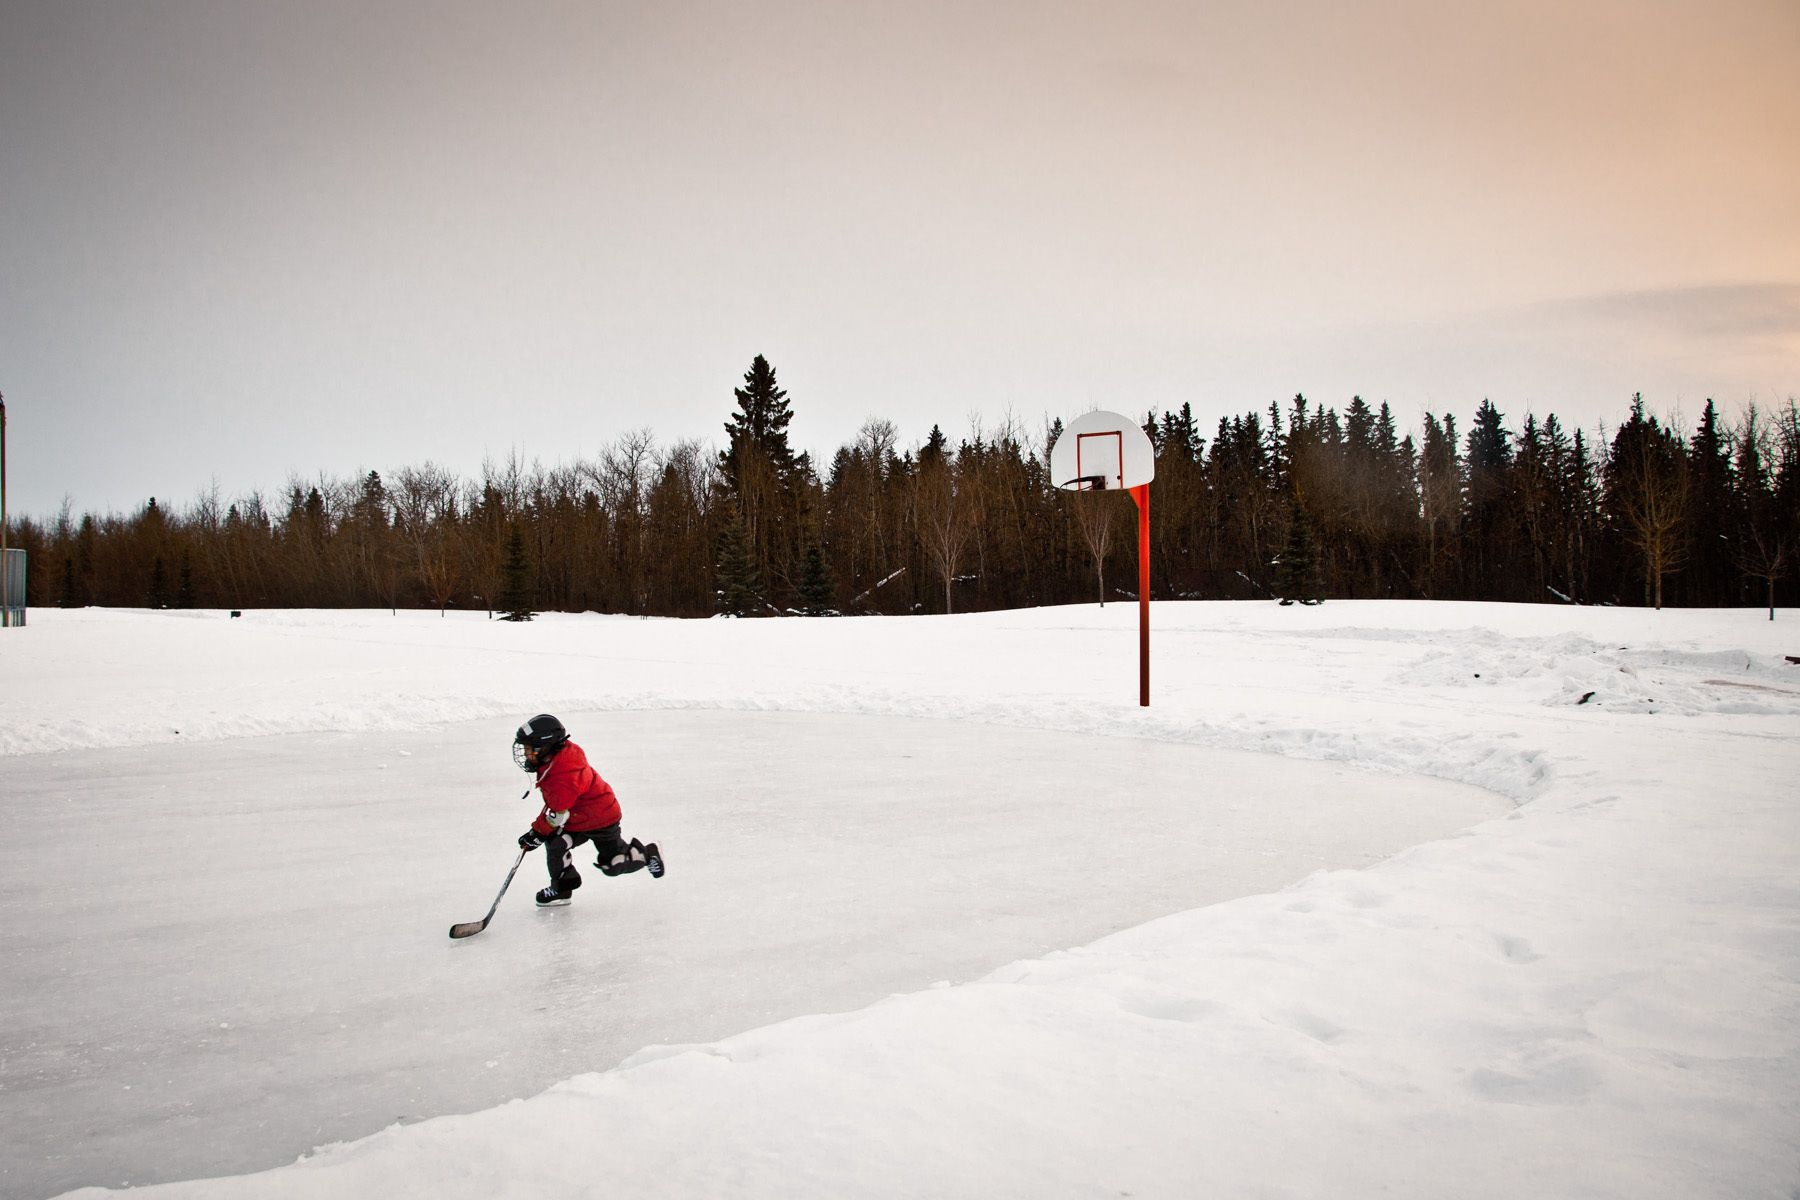 'Tis the Season?  A young hockey player practices his skating on a frozen basketball court in Alberta